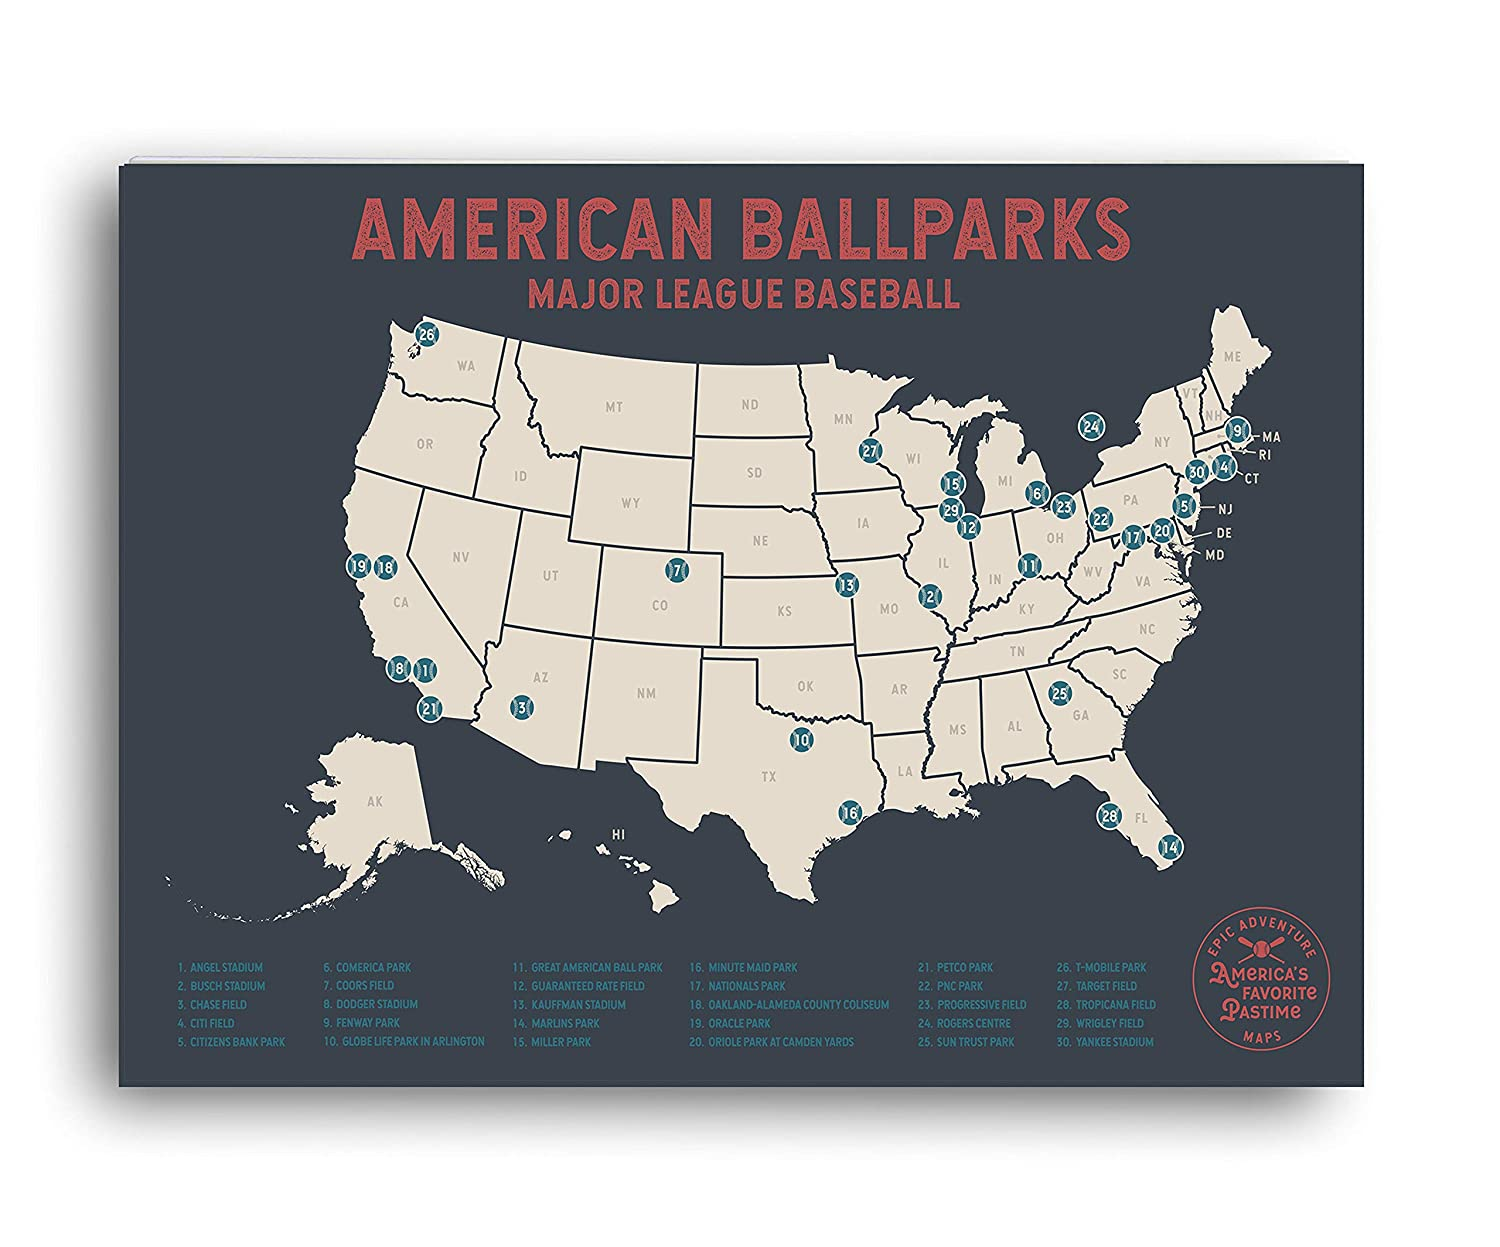 Epic Adventure Maps Major League Baseball Travel Map - Mark Your Travels to  Your Favorite MLB Baseball stadiums - Great Graduation Gift or Gift for